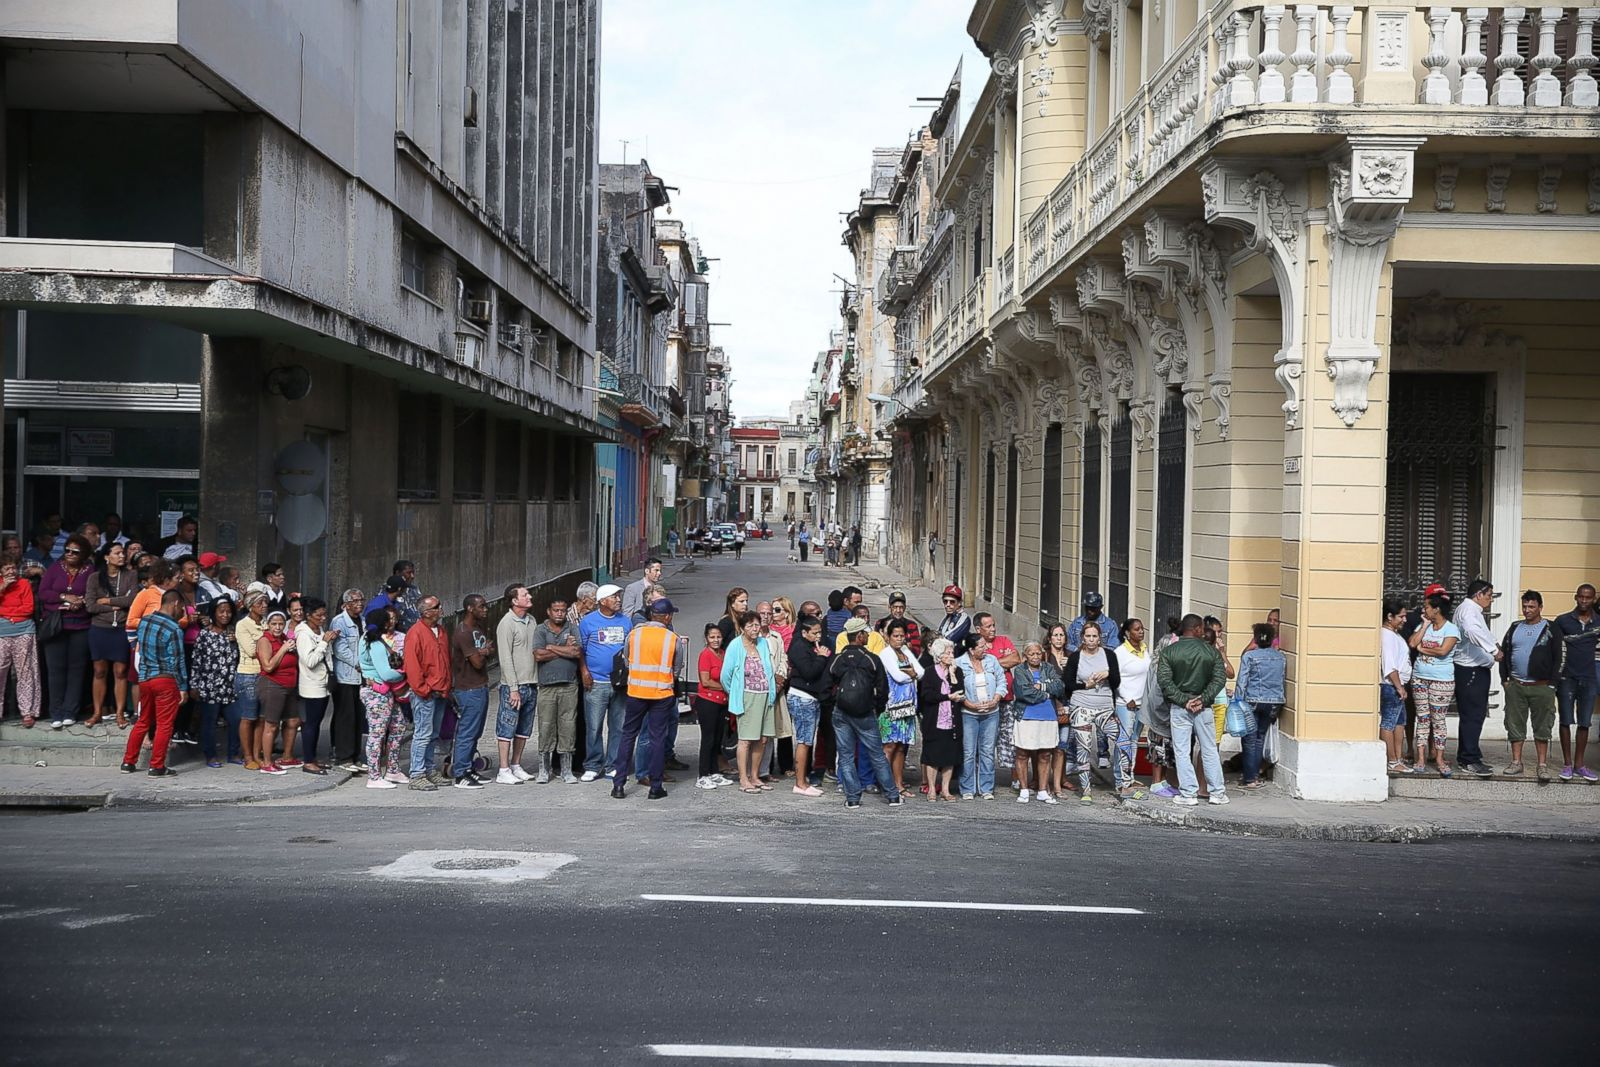 Arte Replay Obama Obama S Visit To Cuba Signals Change Between The Two Countries